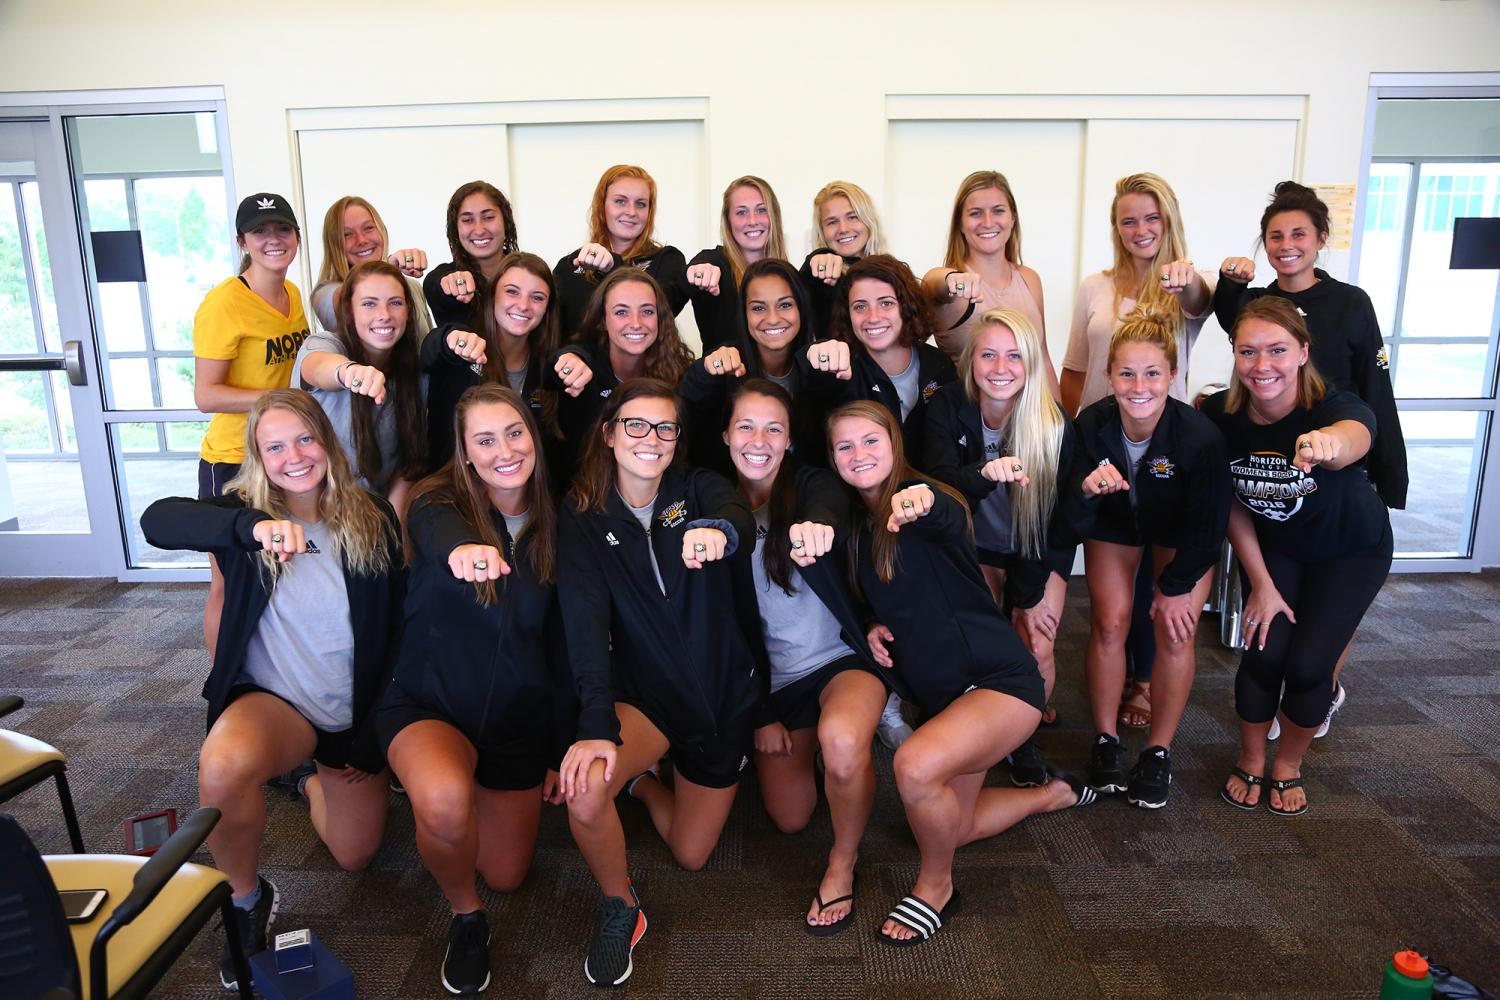 The+Norse+received+their+championship+rings+at+NKU+Soccer+Stadium